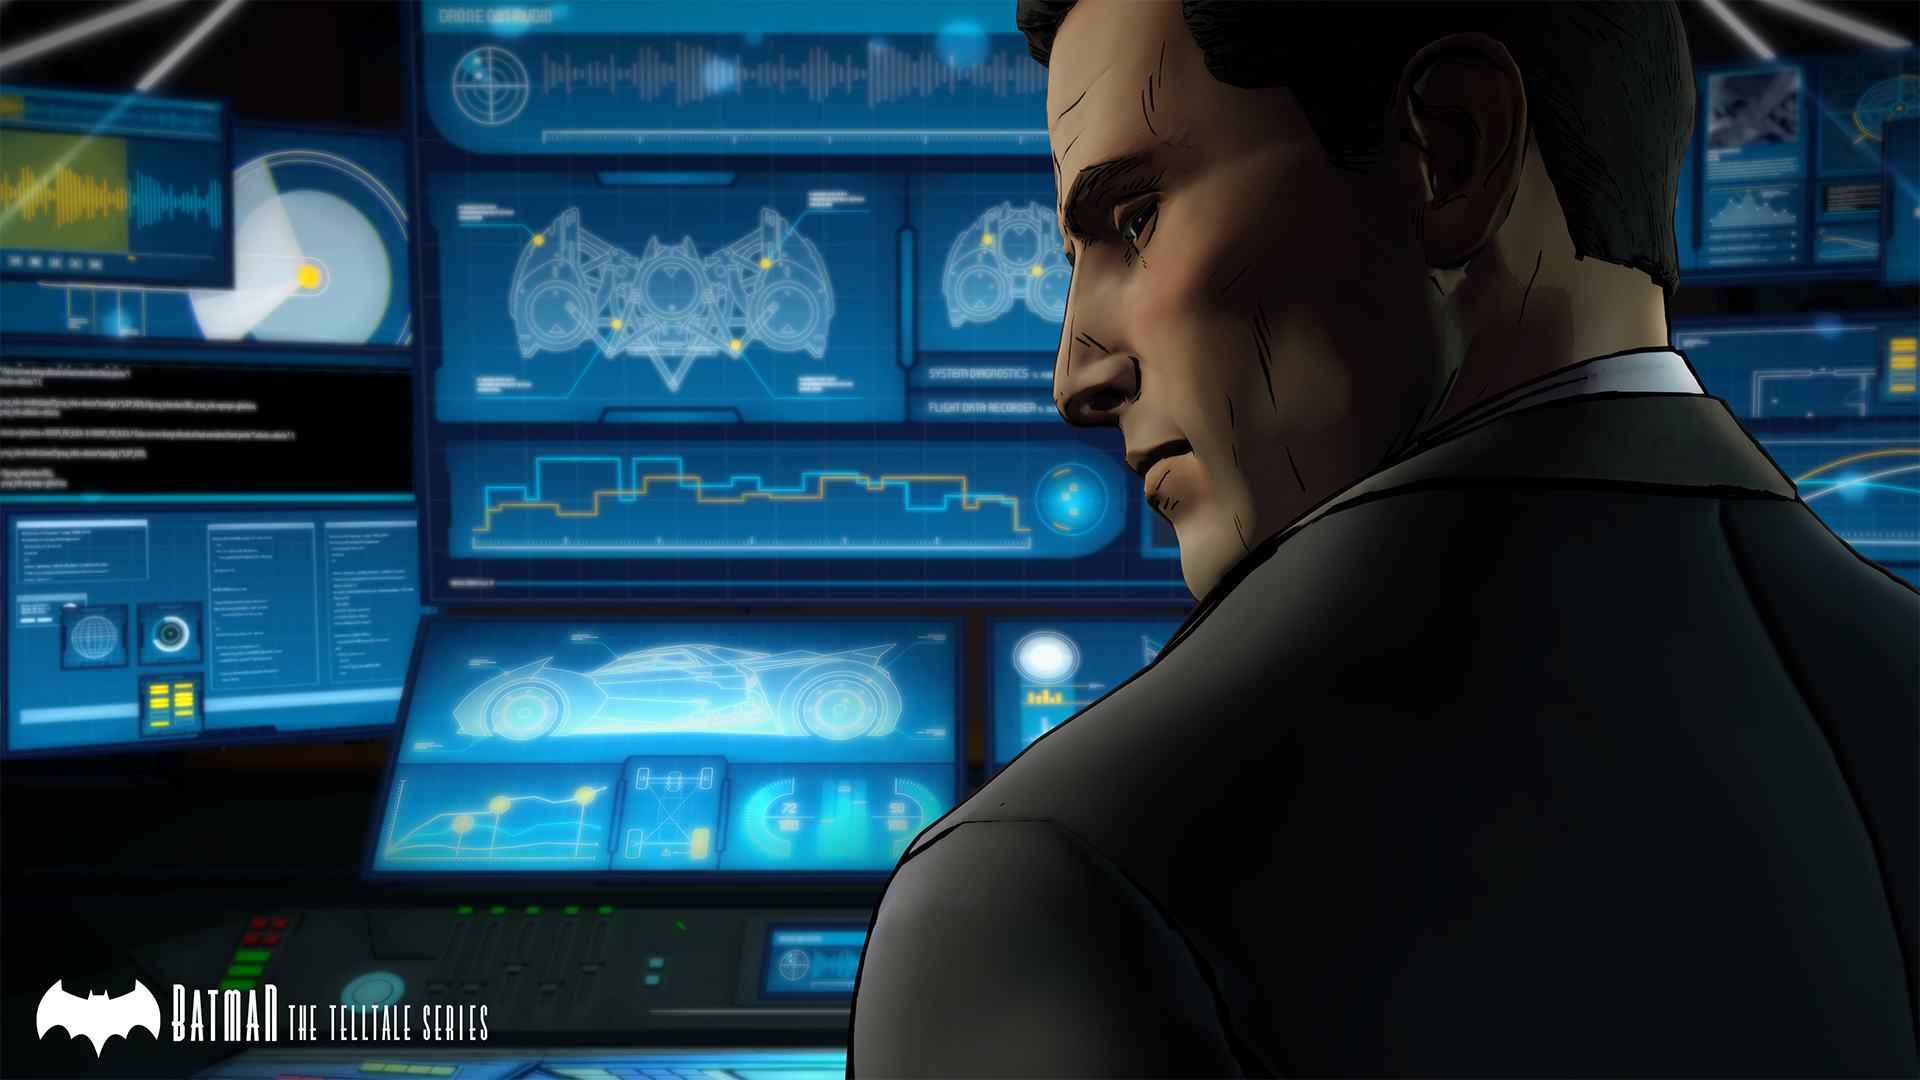 batman-the-telltale-series-screenshot- (3)